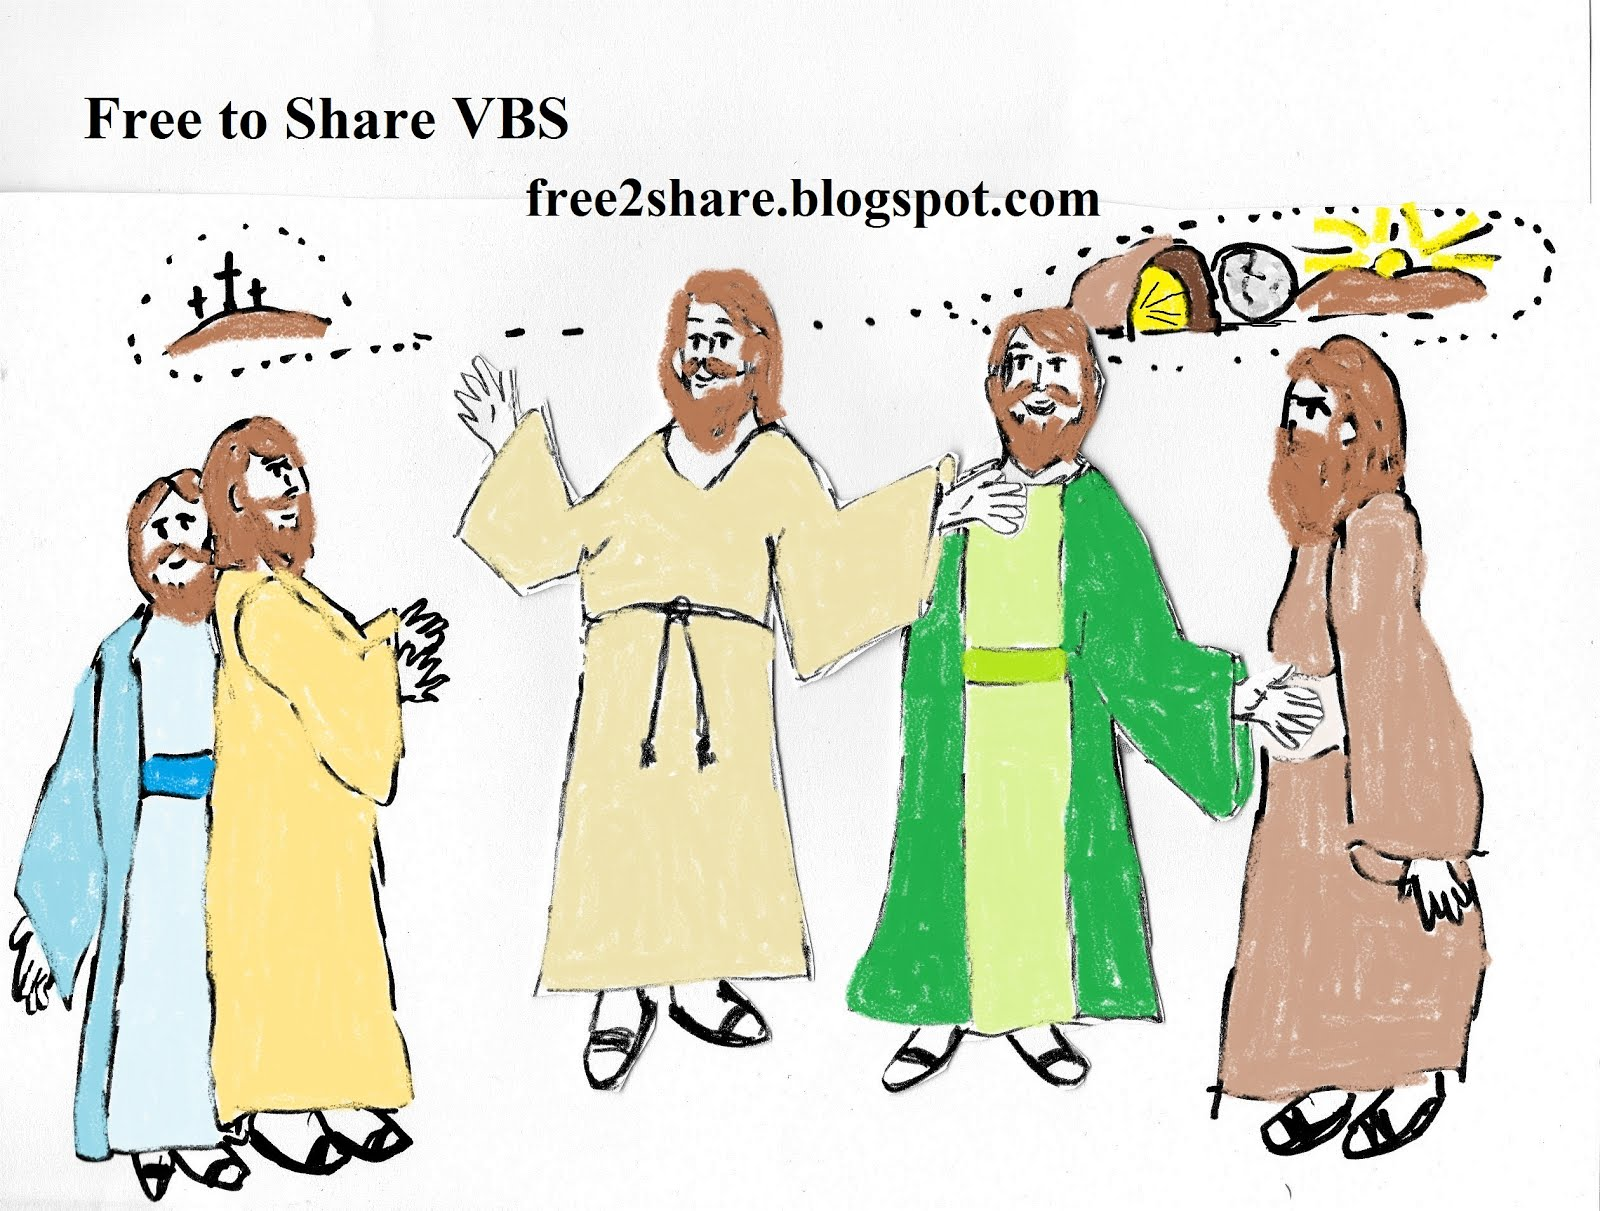 Free2ShareVBS Link